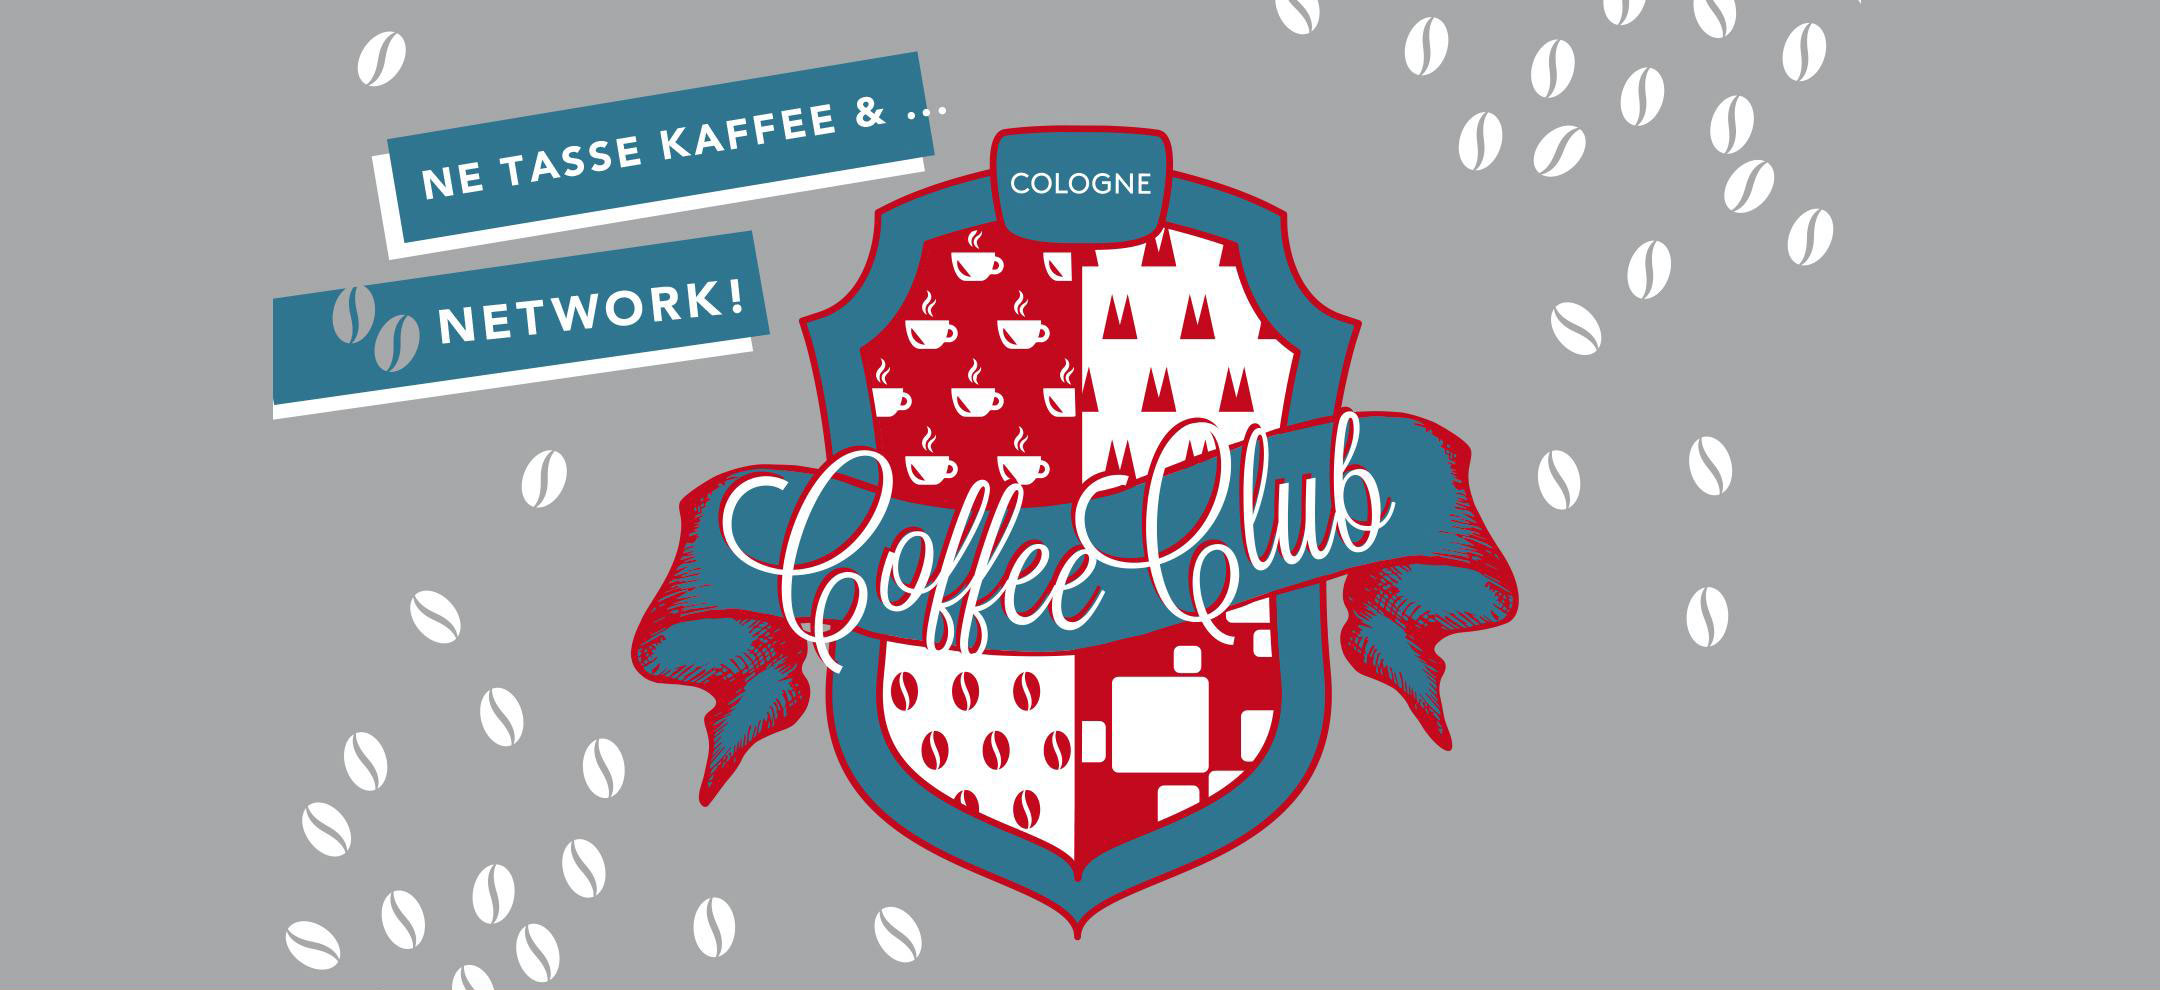 coffeeclubcologne